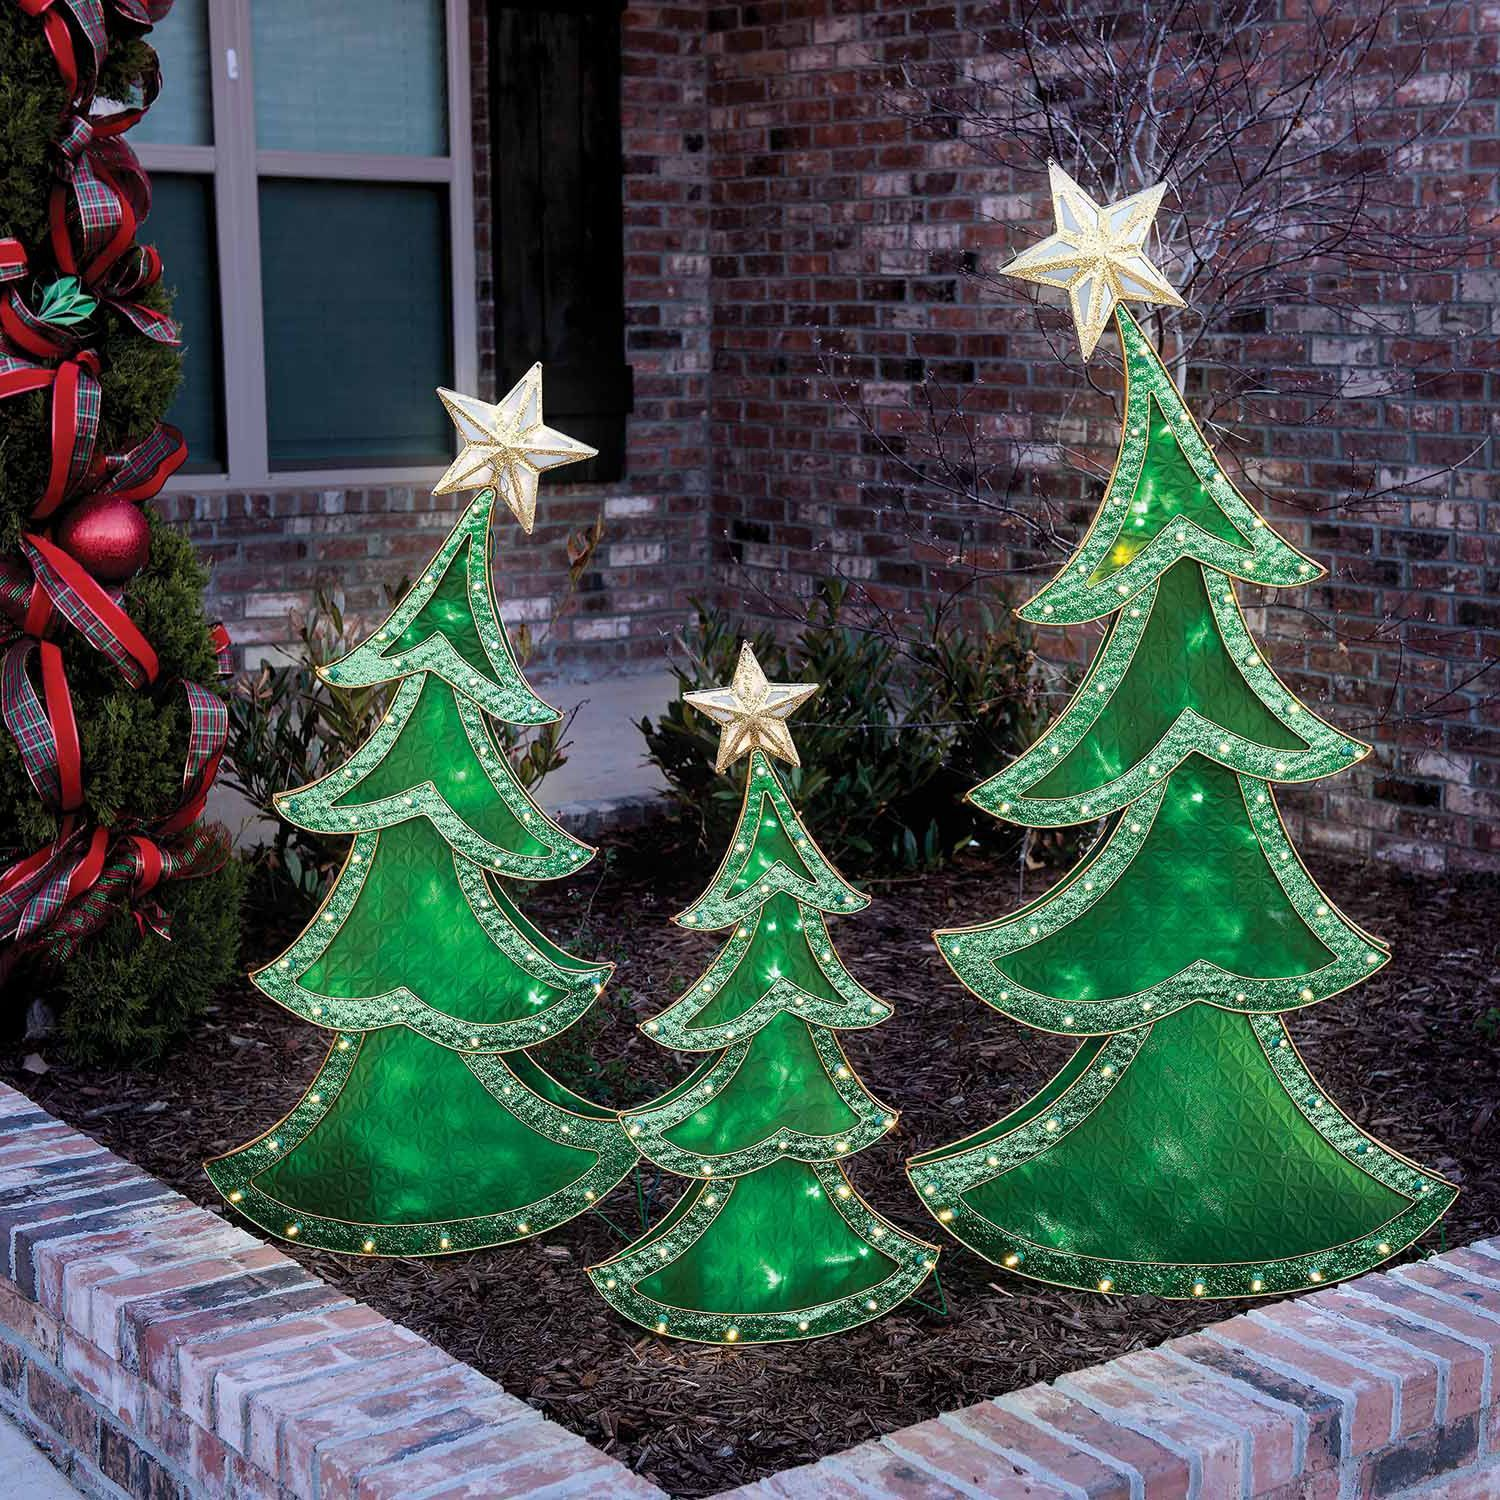 led decorative christmas trees set of 3 36 48 and 60 17998 at sams club - Sams Club Christmas Decorations